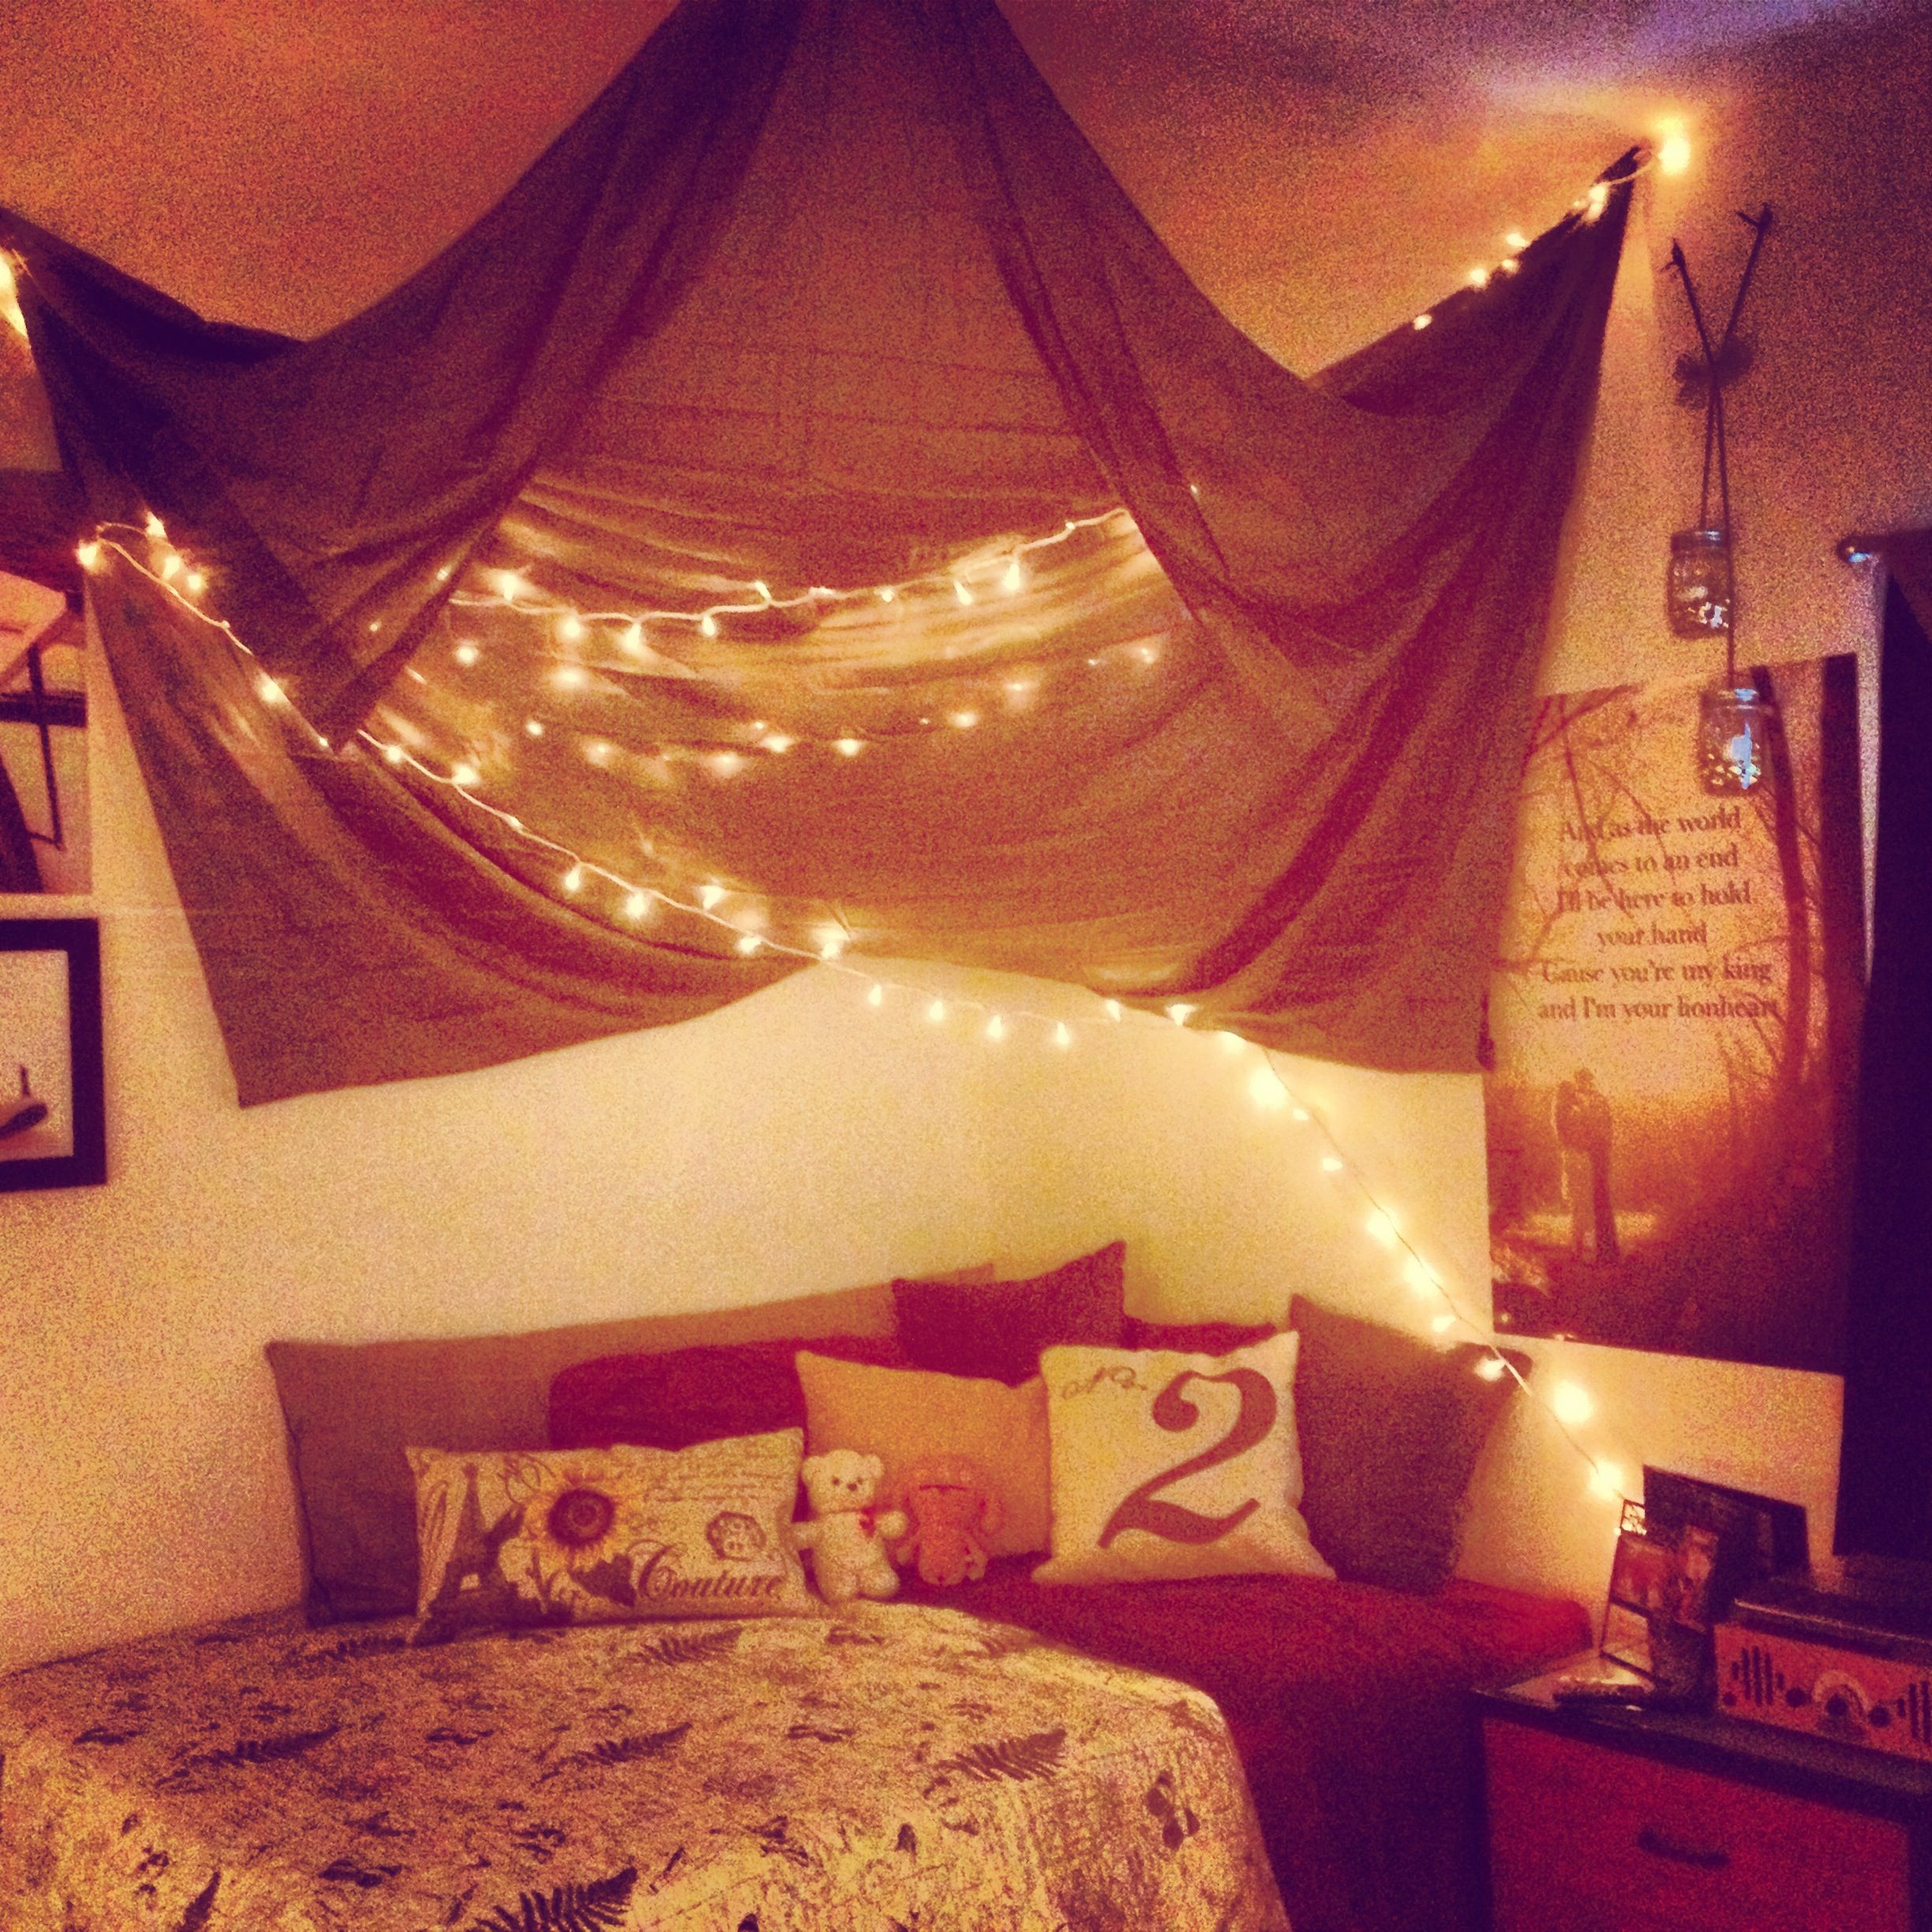 hipster bedroom decorations those lights are so pretty - Orange Canopy Decorating